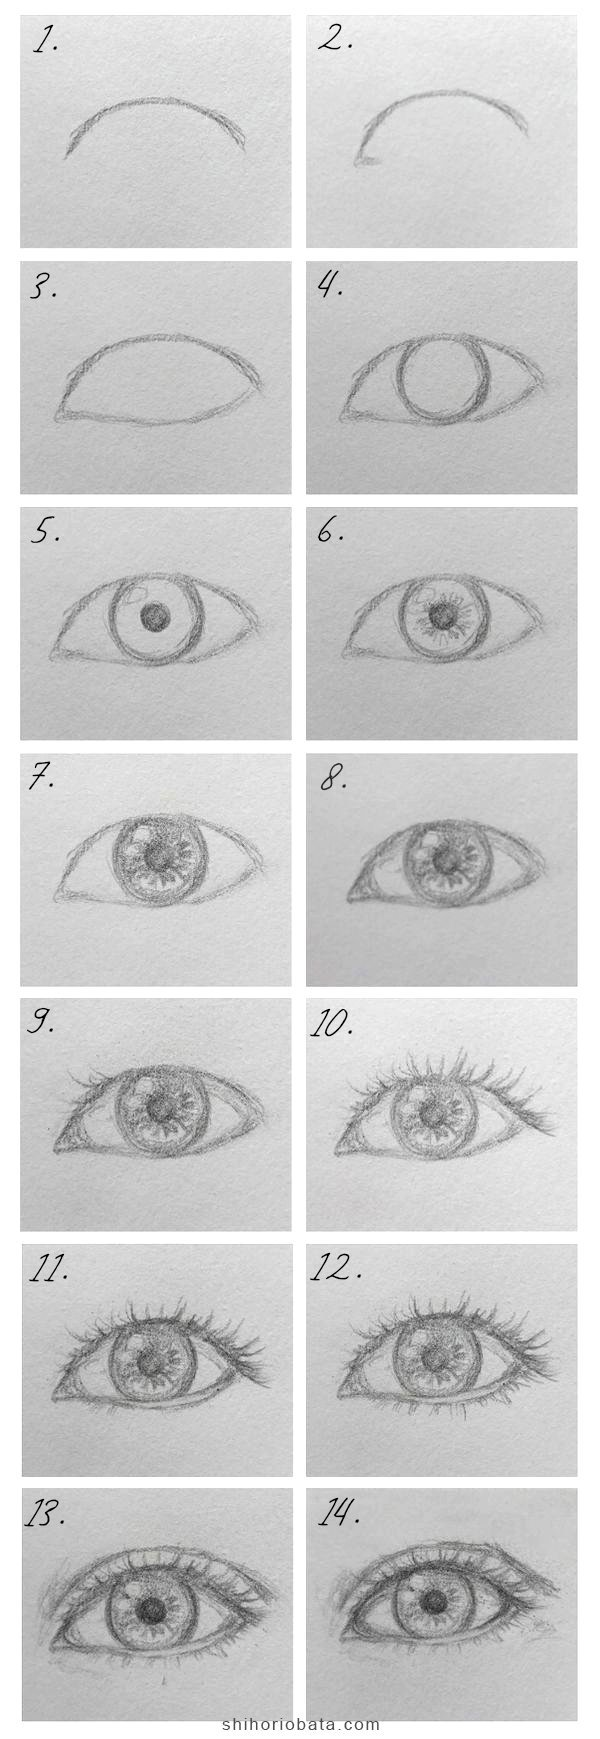 How To Draw A Realistic Eye An Easy Step By Step Guide